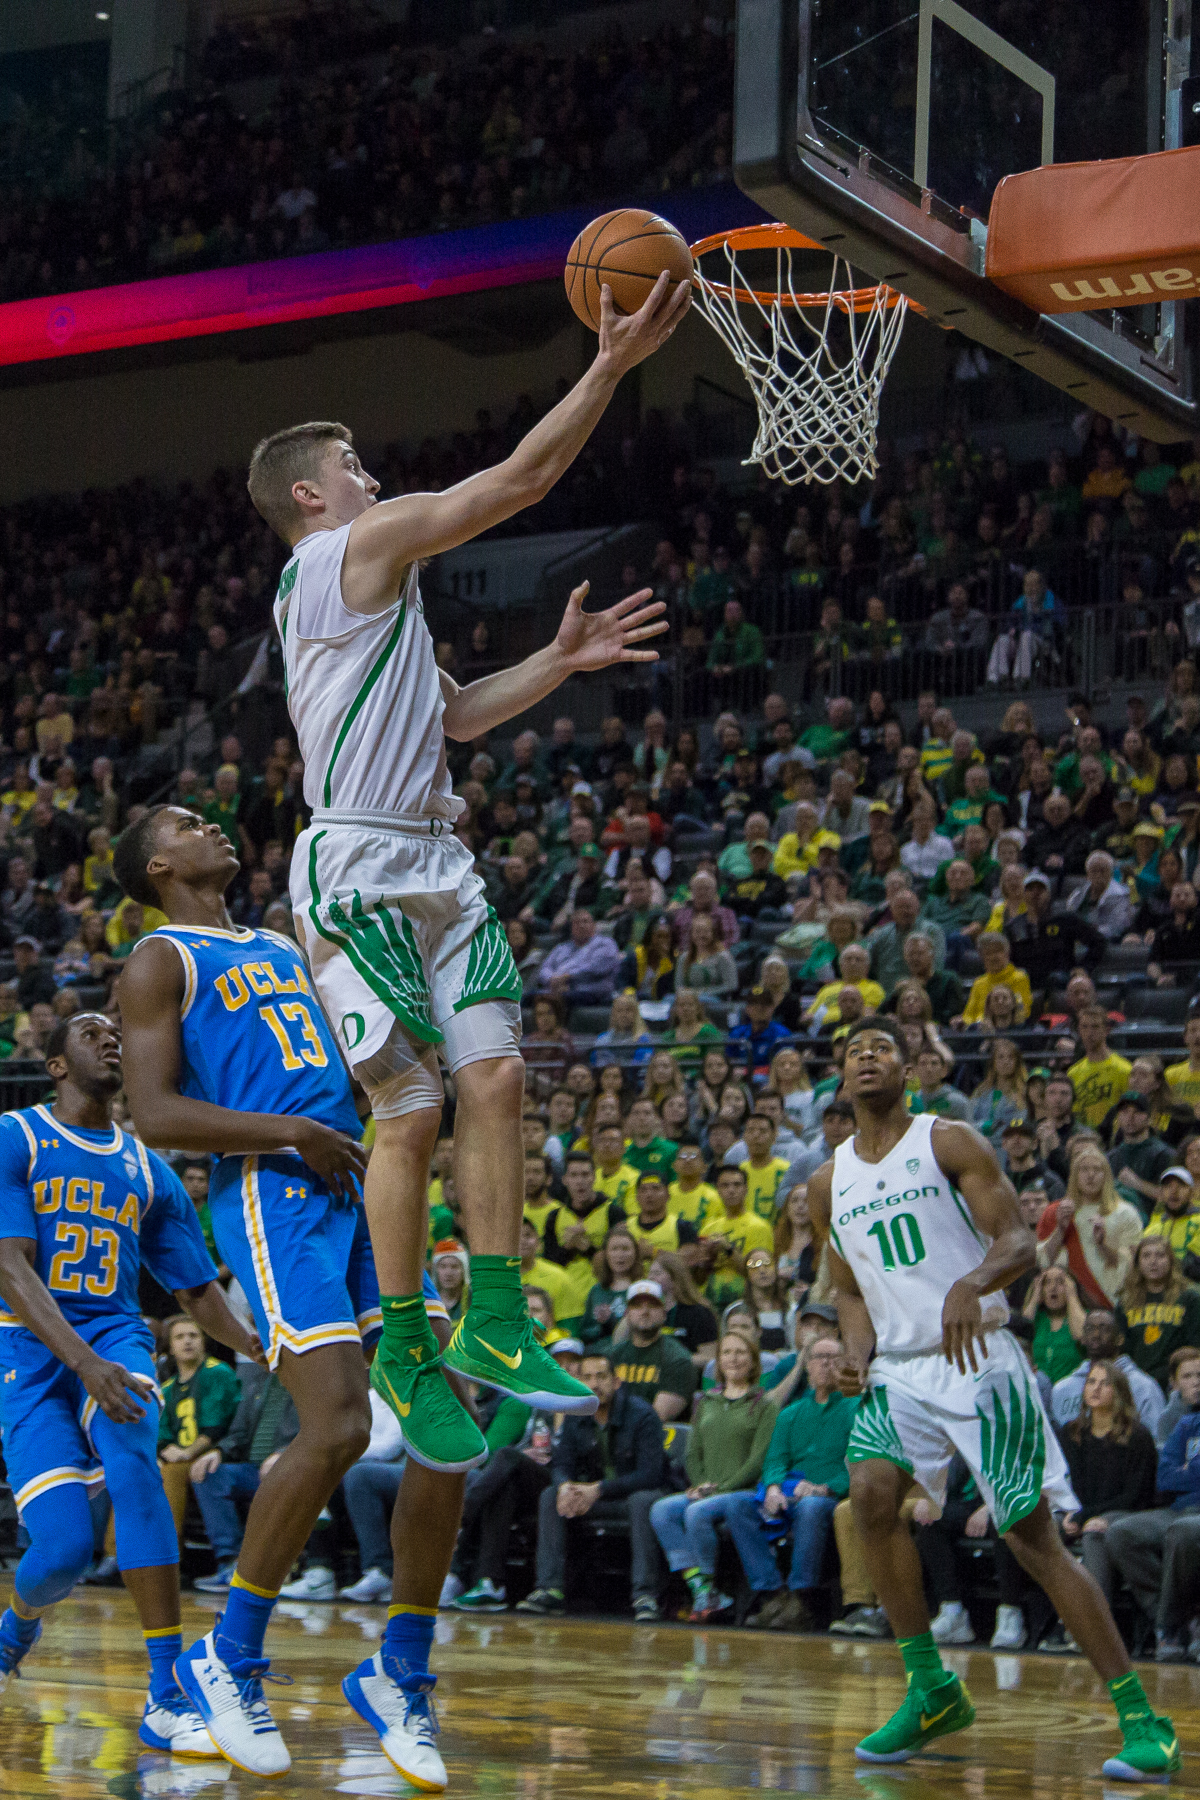 Oregon guard Payton Pritchard (#3) shoots a lay up in the first half. The Oregon Ducks men's basketball team defeated the UCLA Bruins 94-91 Saturday night in front of a home crowd at Matthew Knight Arena. The win brings the Ducks 13-7 overall for the season and 3-4 in Pac-12 play. Photo by Dillon Vibes